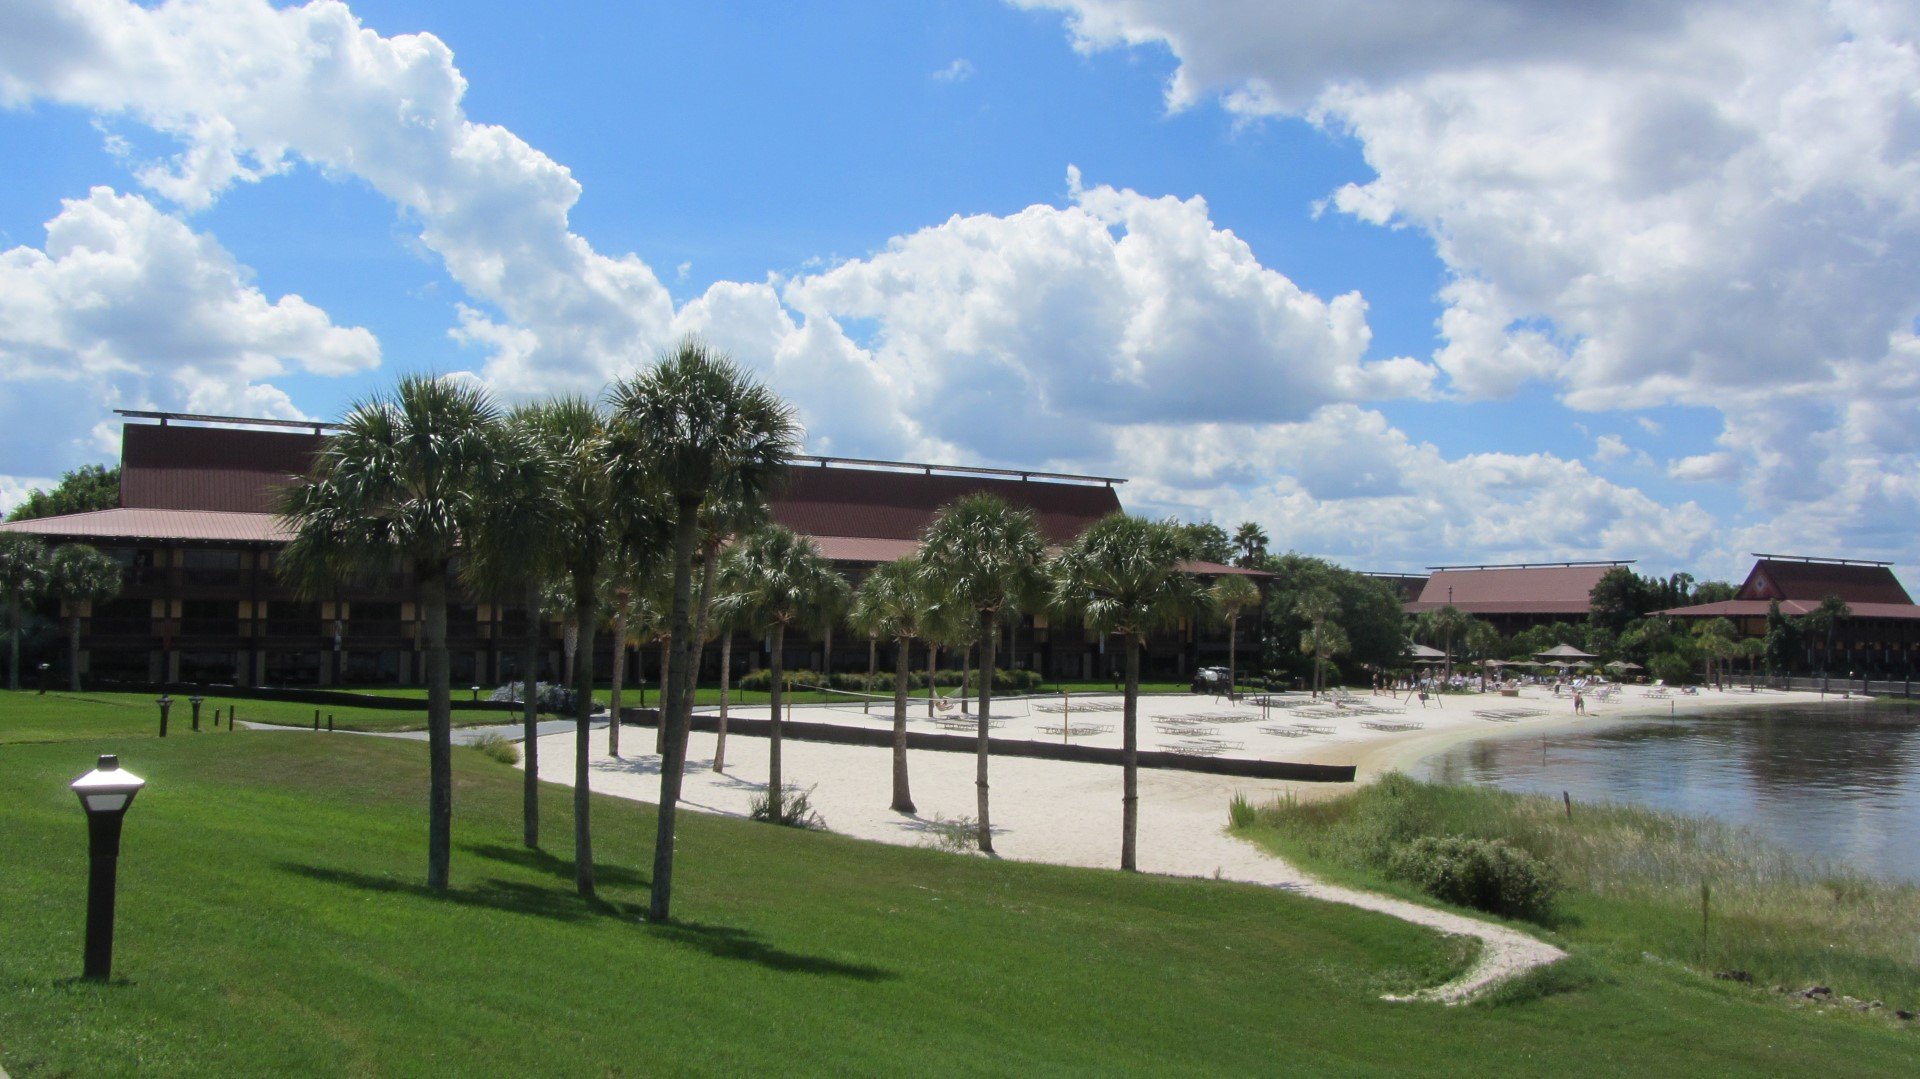 Early signs of DVC villas site preparation at Disney's Polynesian Resort